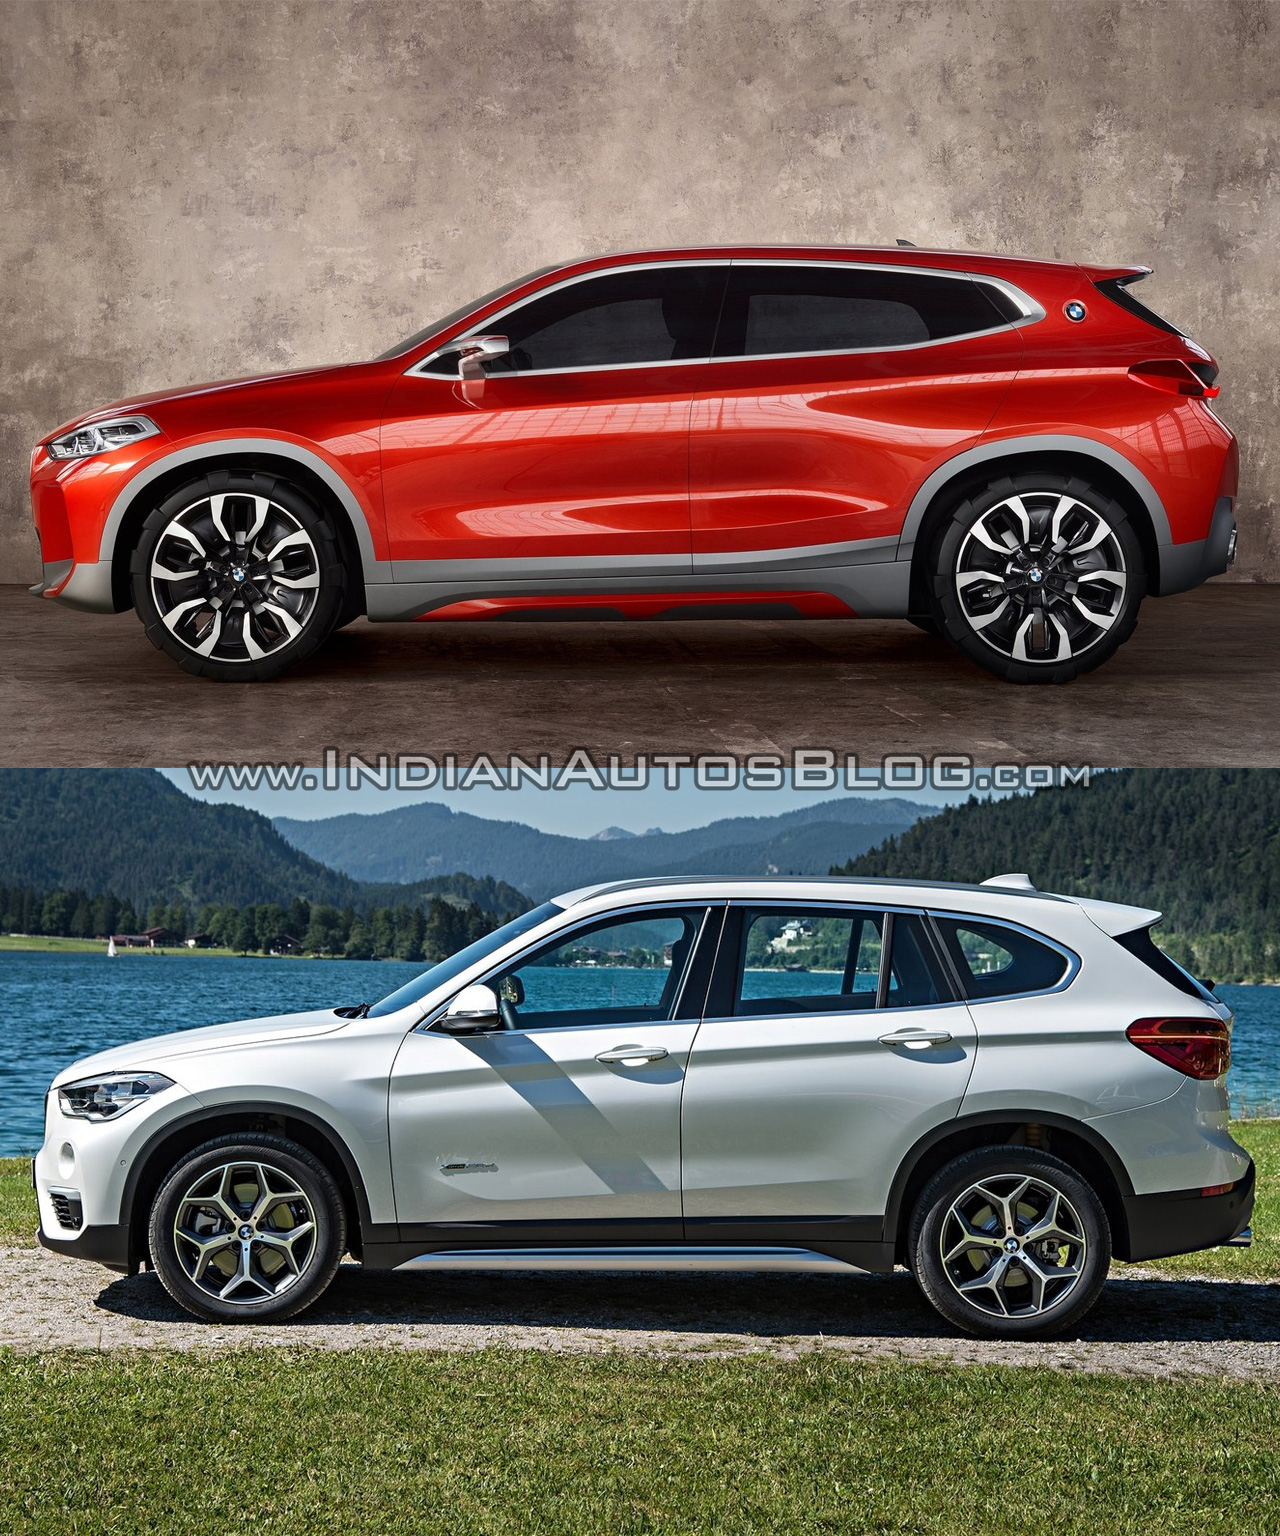 bmw x2 vs bmw x1 in images. Black Bedroom Furniture Sets. Home Design Ideas